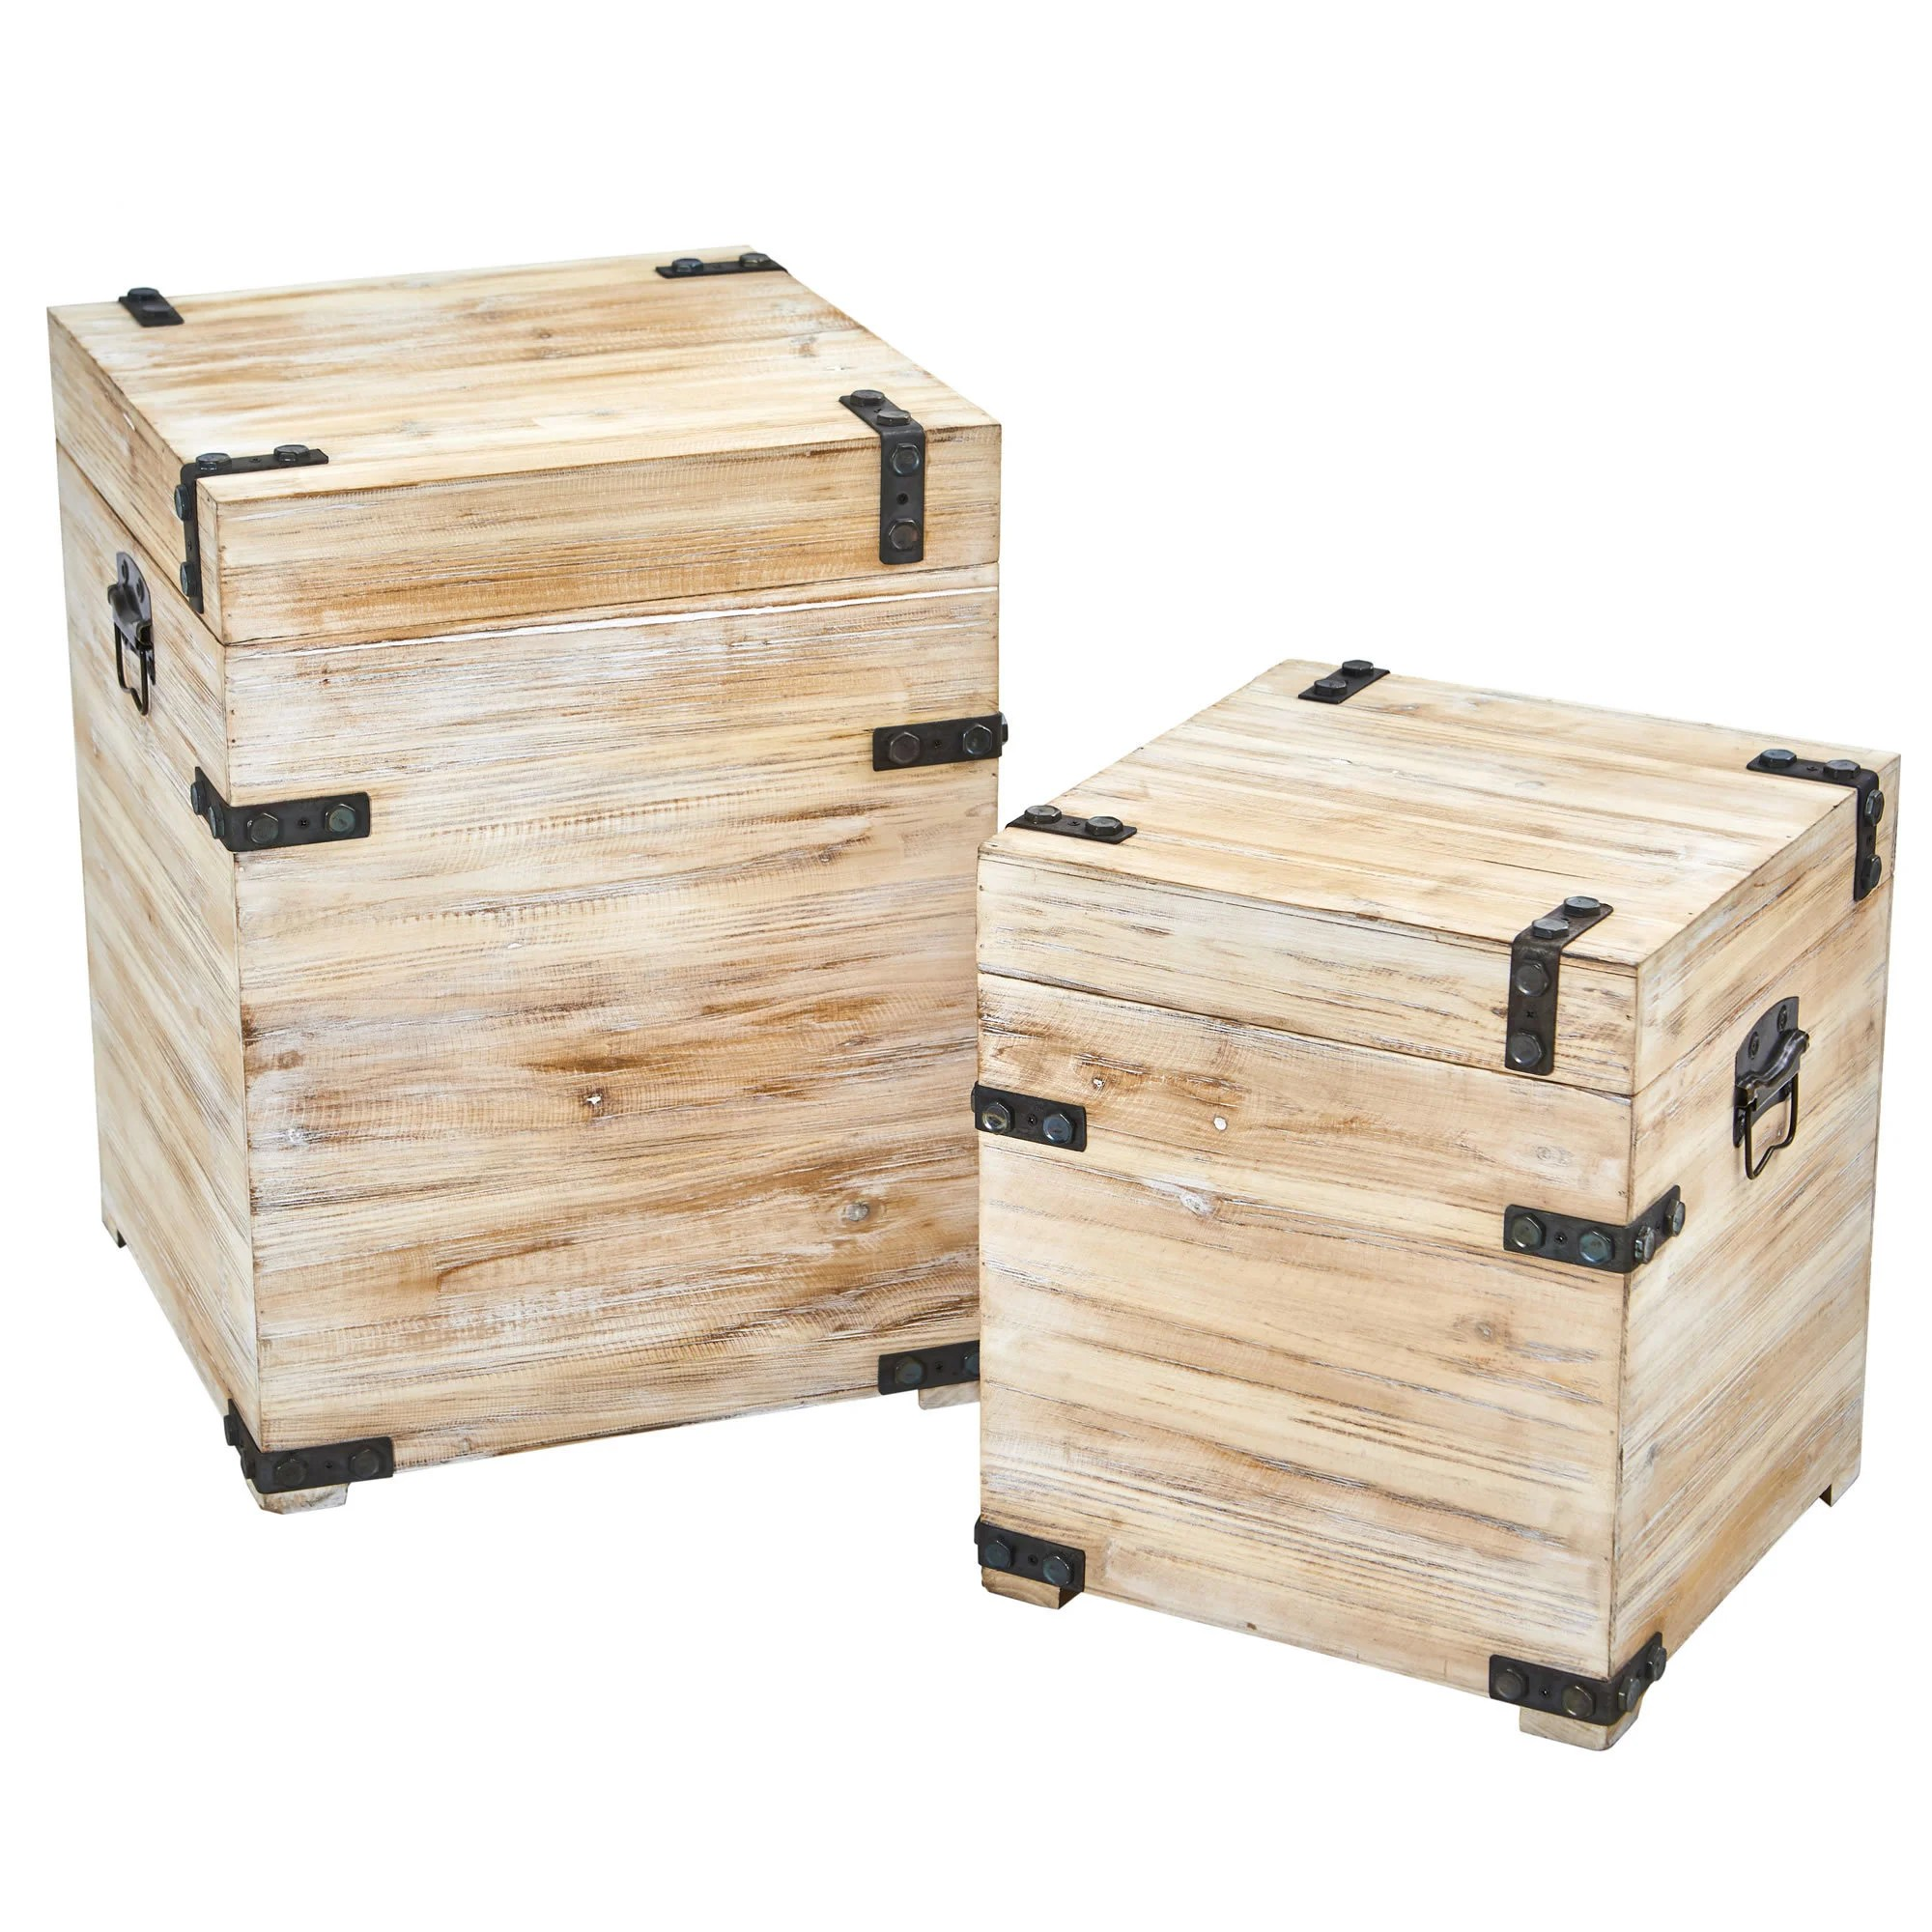 Shop Black Friday Deals On Decorative White Wash Storage Boxes Trunks With Metal Detail Set Of 2 On Sale Overstock 19627791